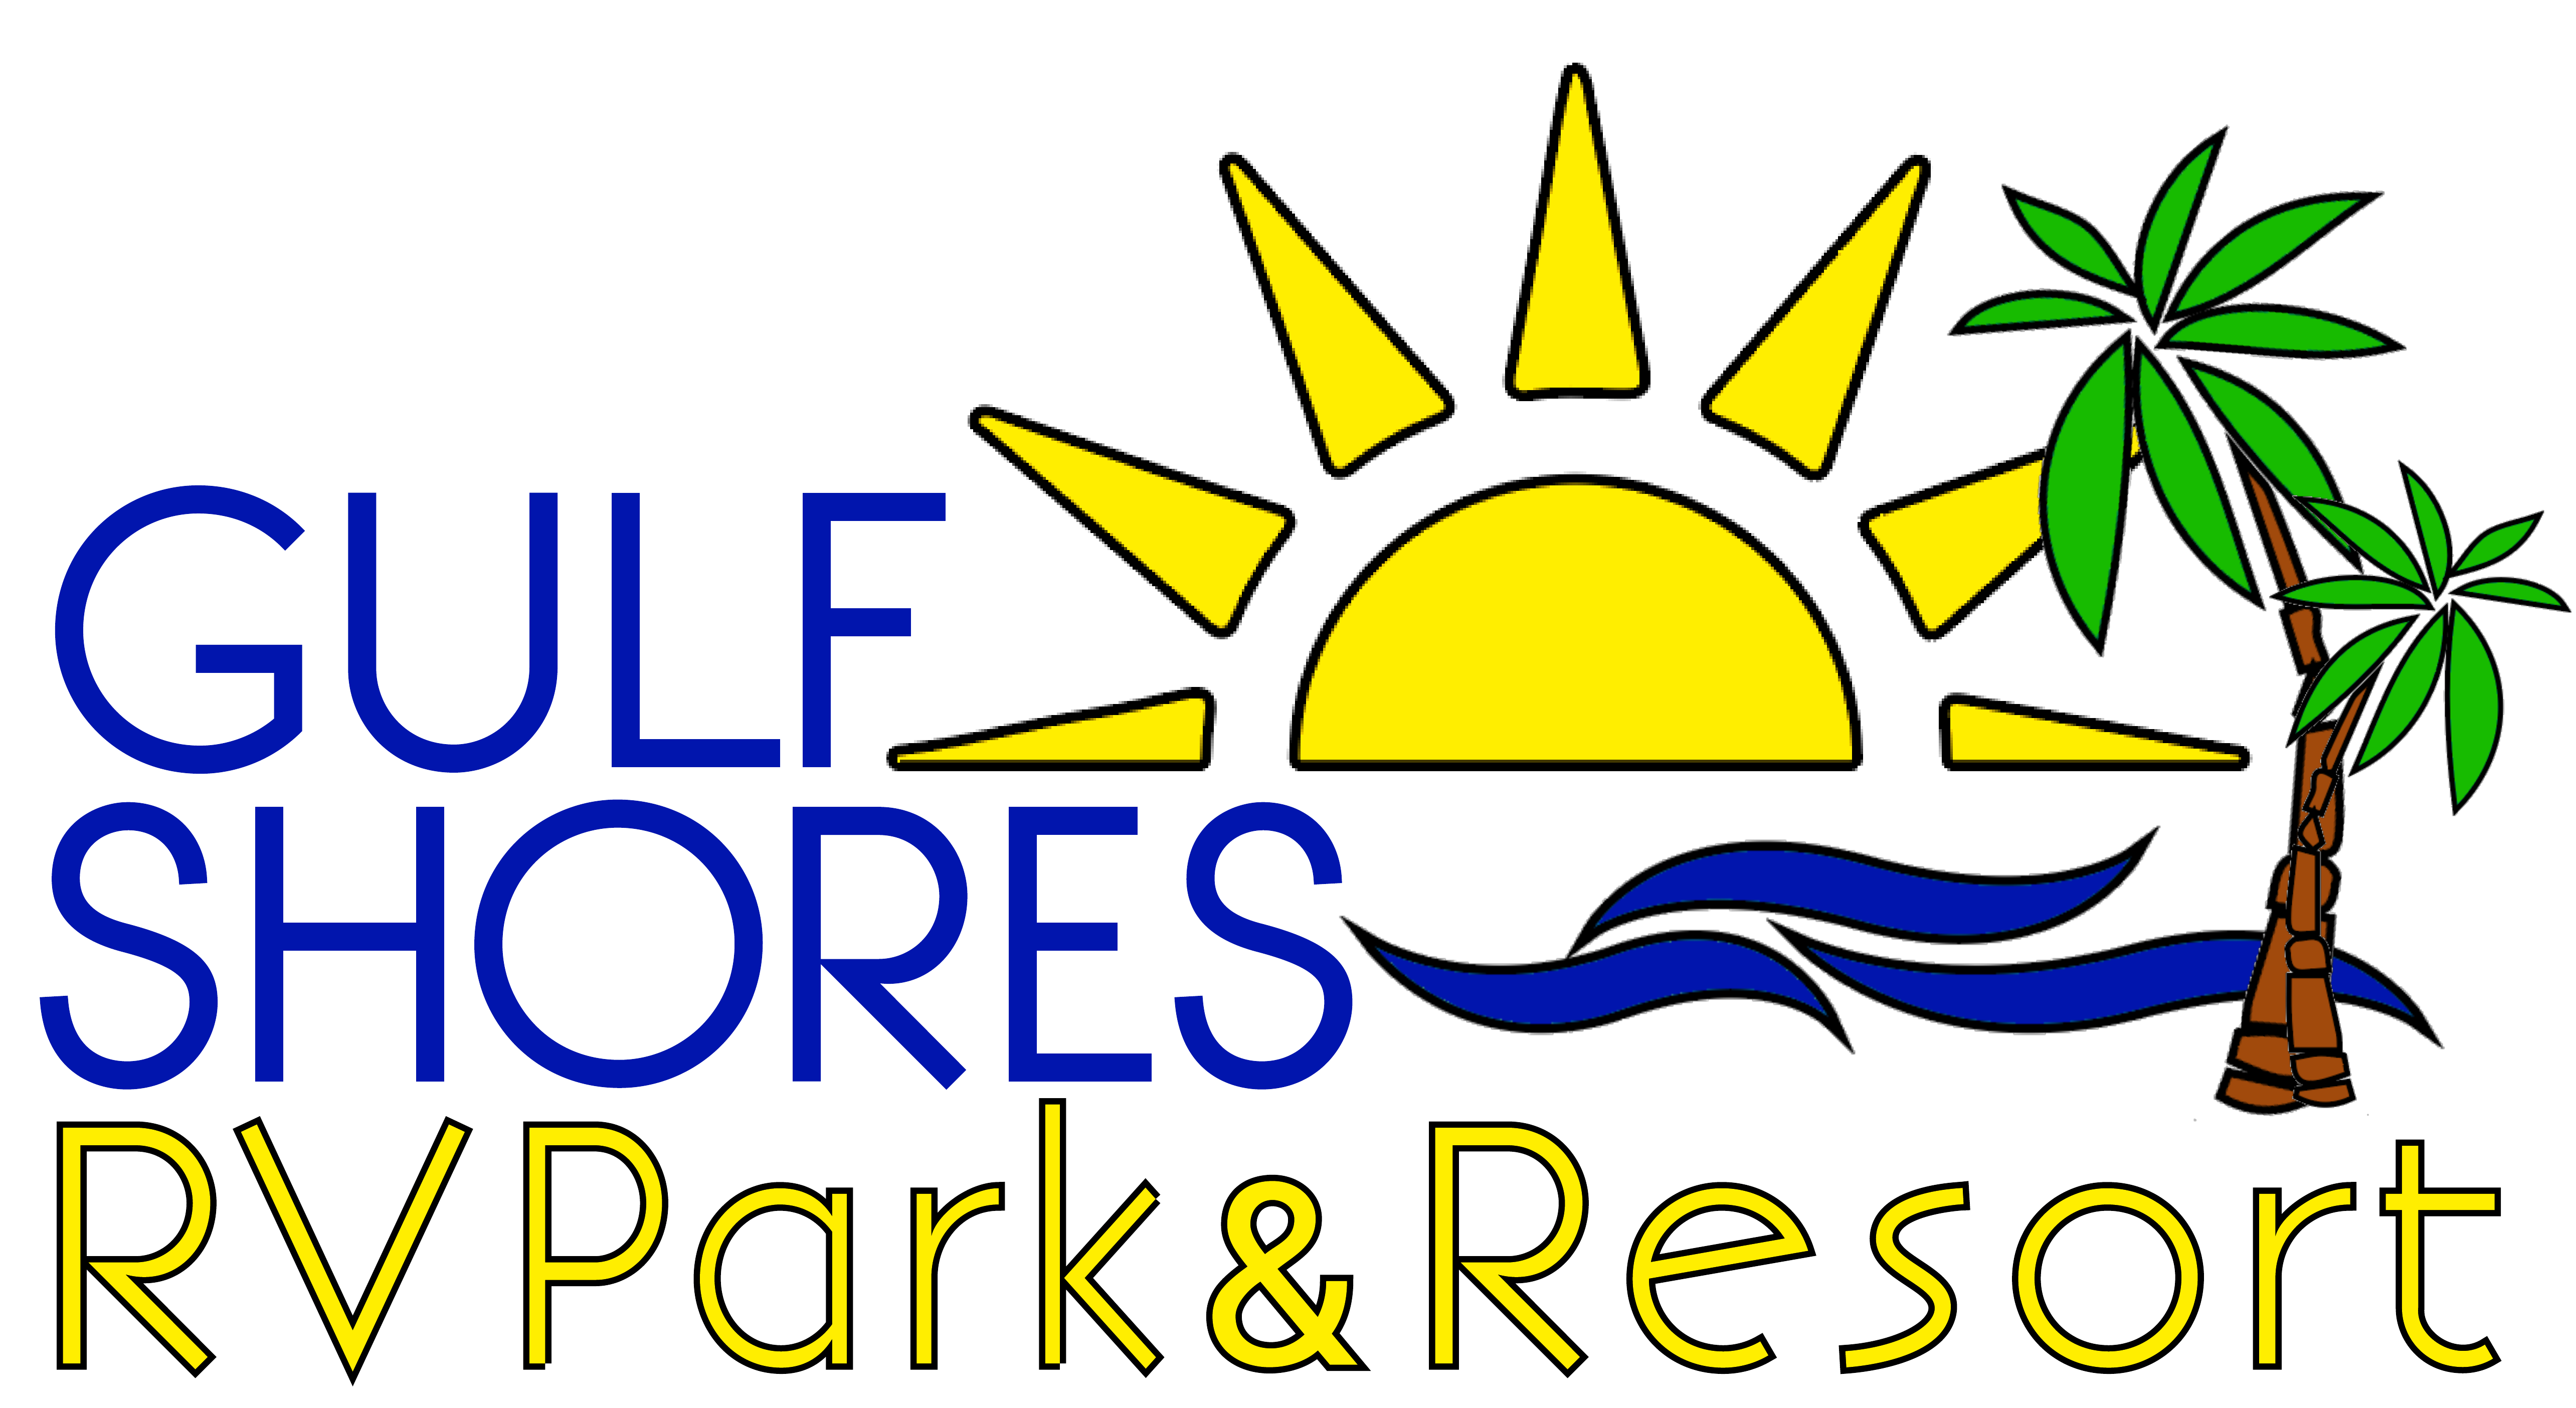 Gulf Shores RV Park and Resort